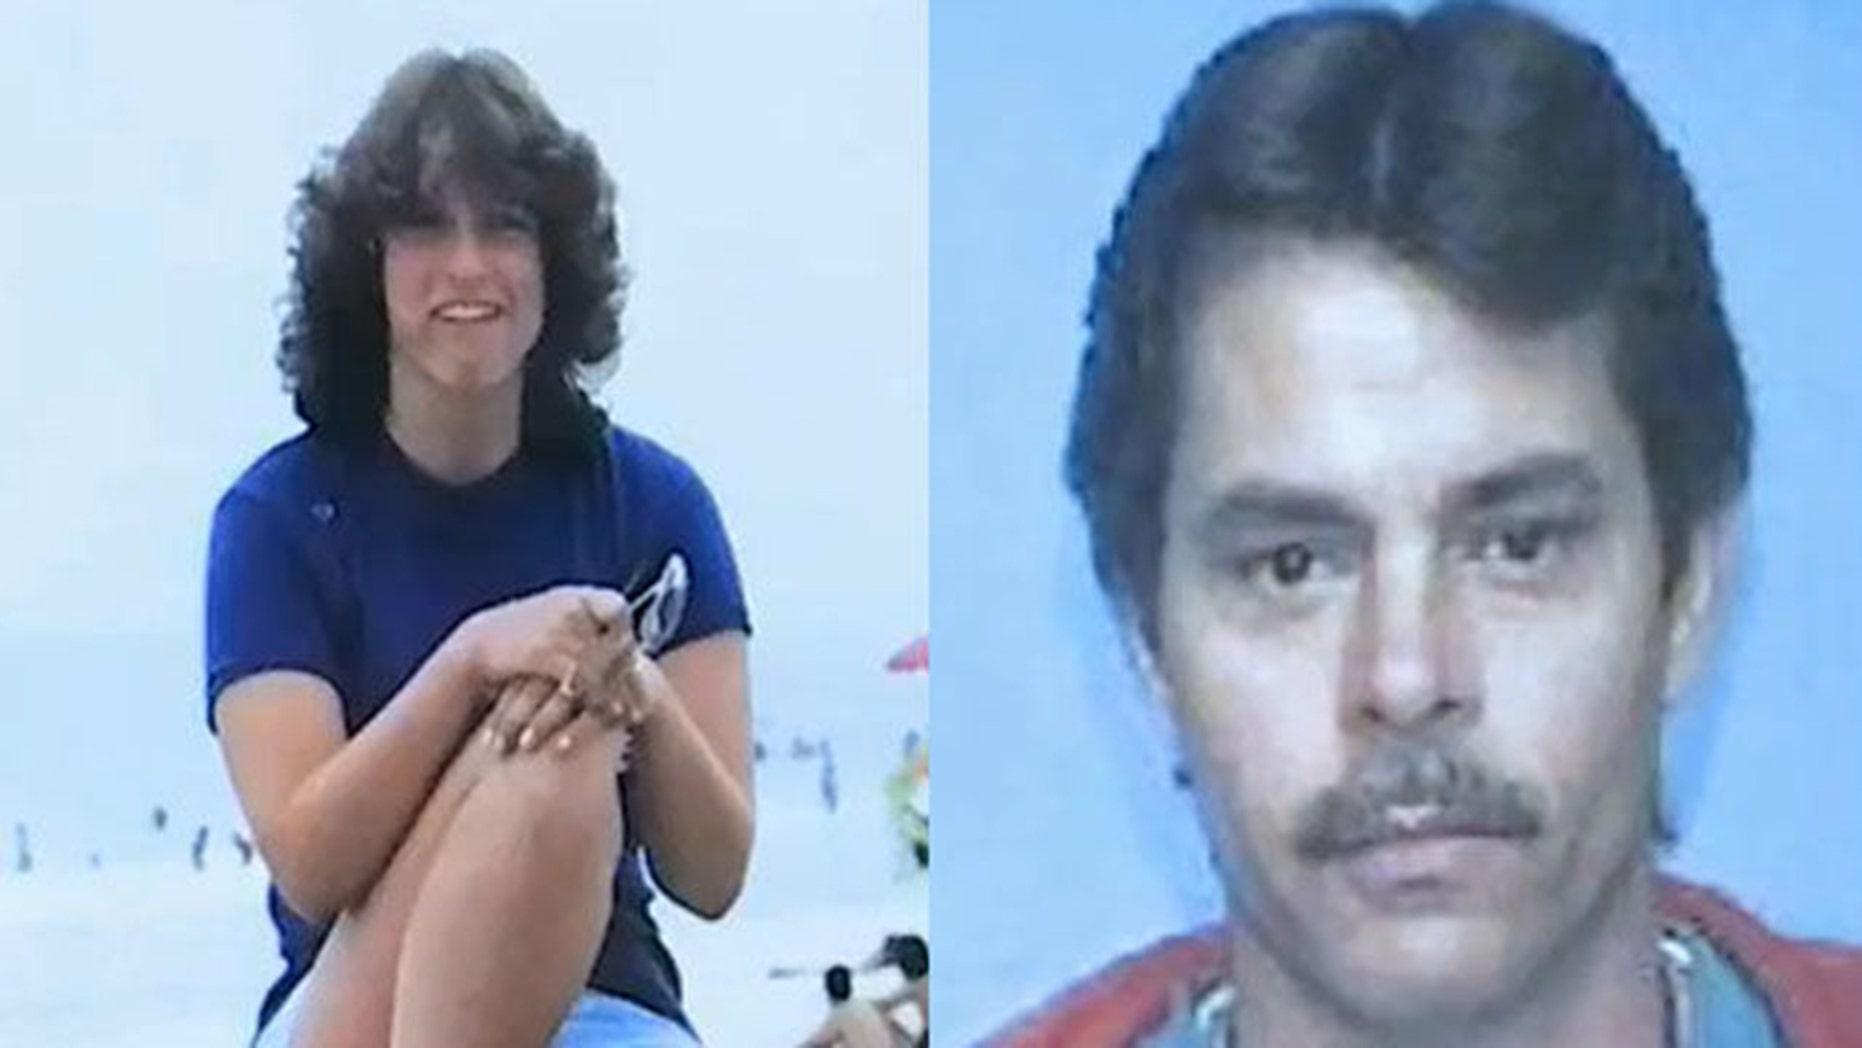 Jenny Zitricki, 28 was killed in 1990. Police say Robert Brashers was linked to the crime through DNA.